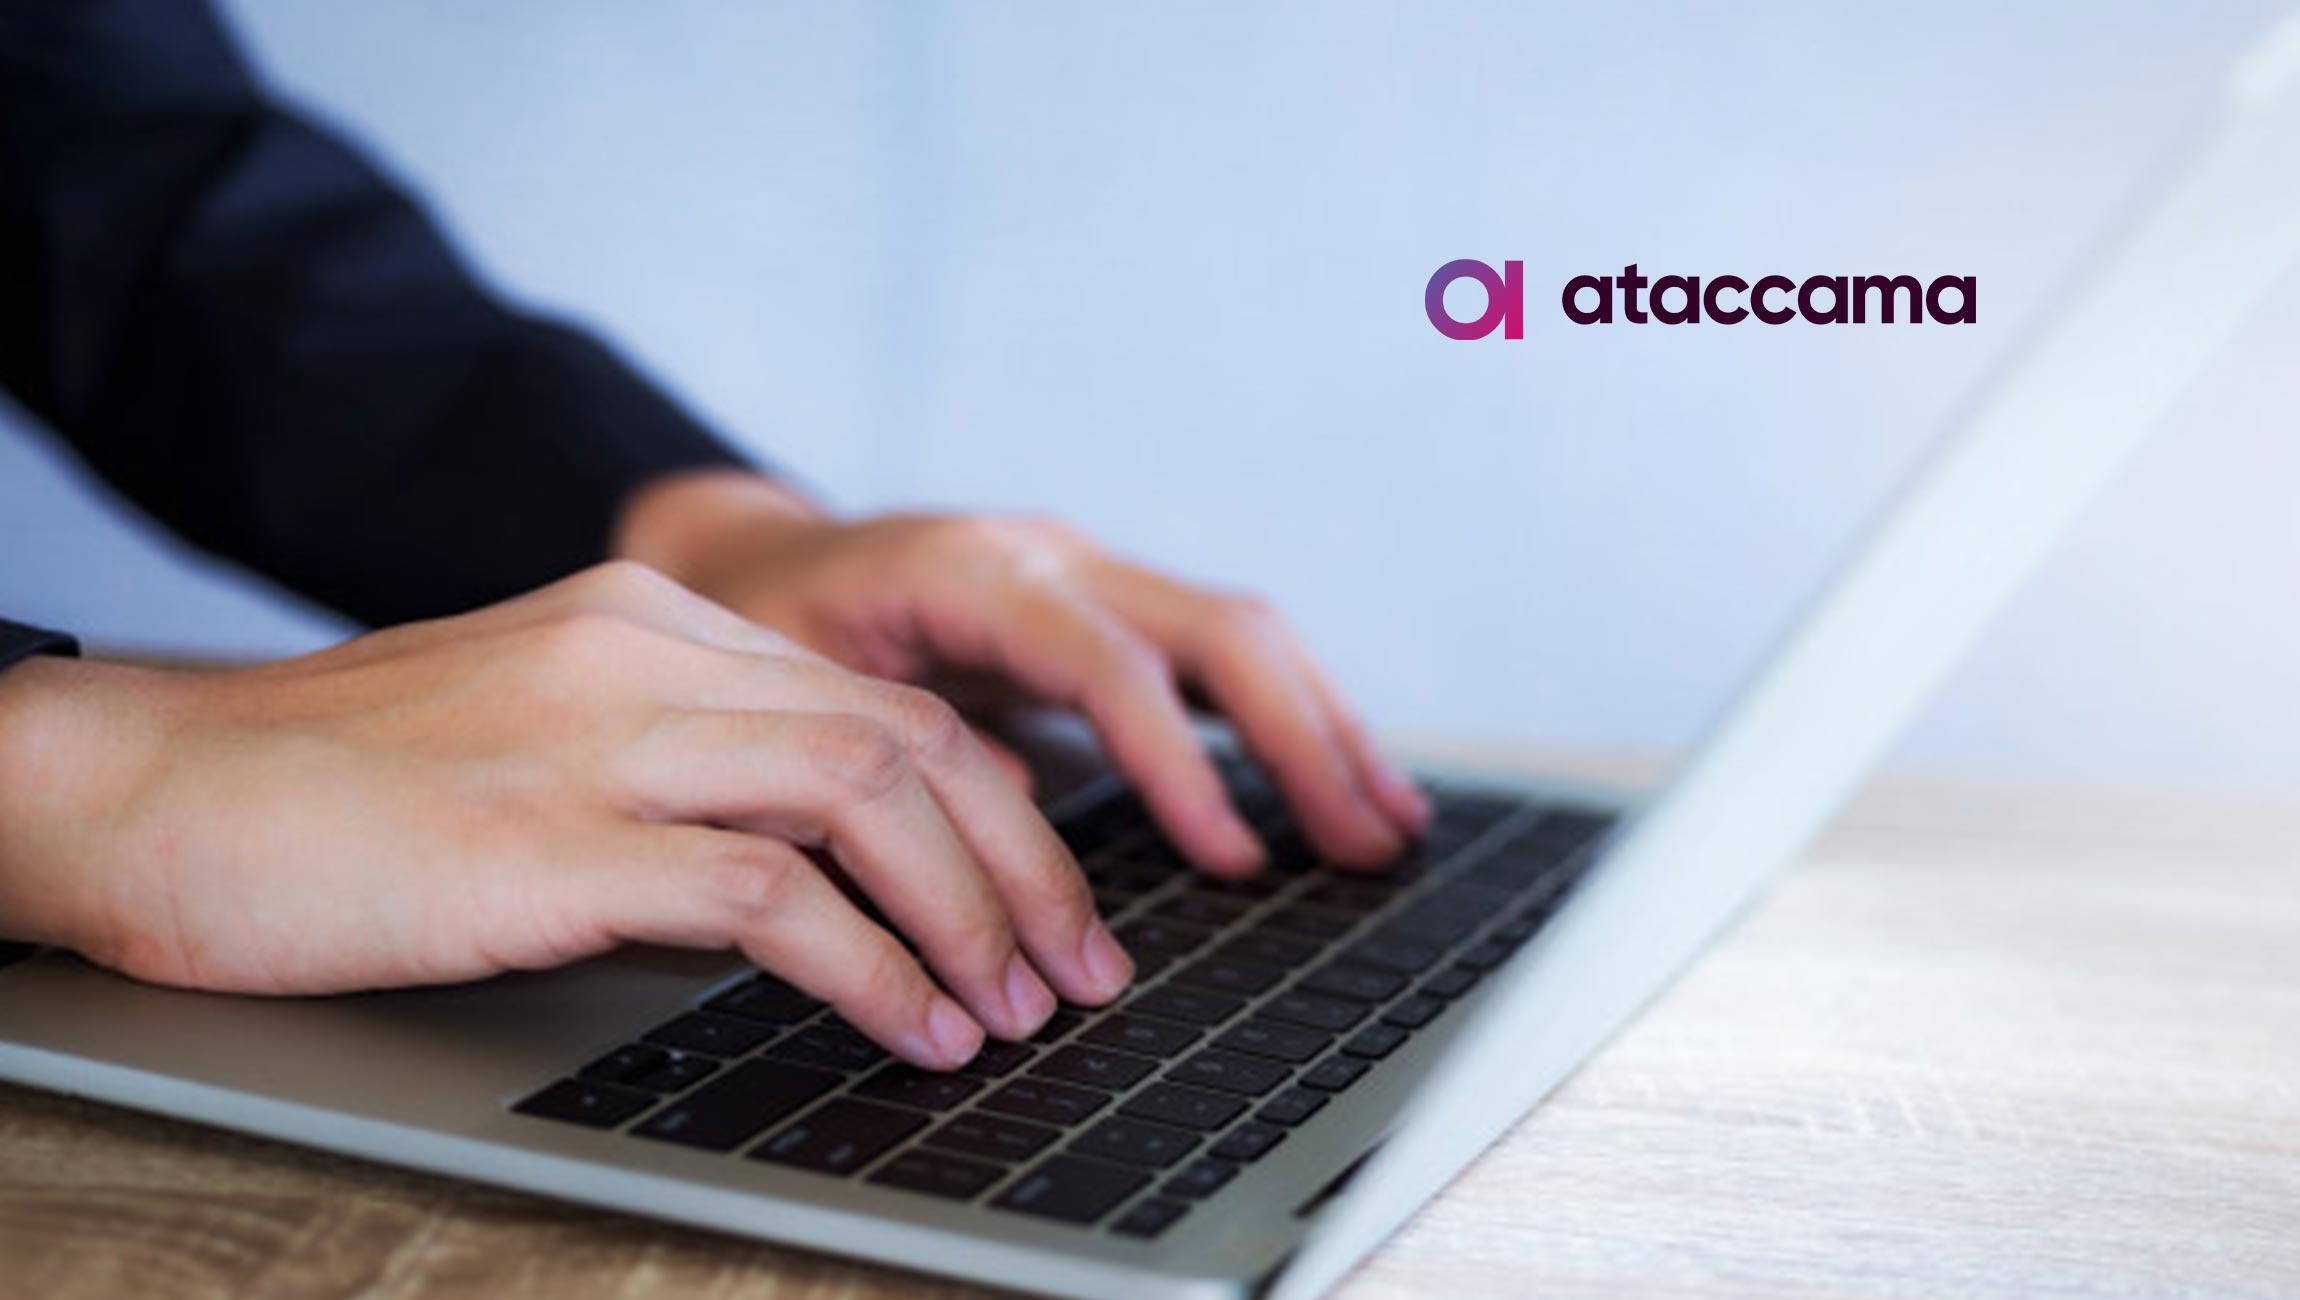 Ataccama Positioned as a Visionary in the 2019 Gartner Magic Quadrant for Data Quality Tools for the 8th Year